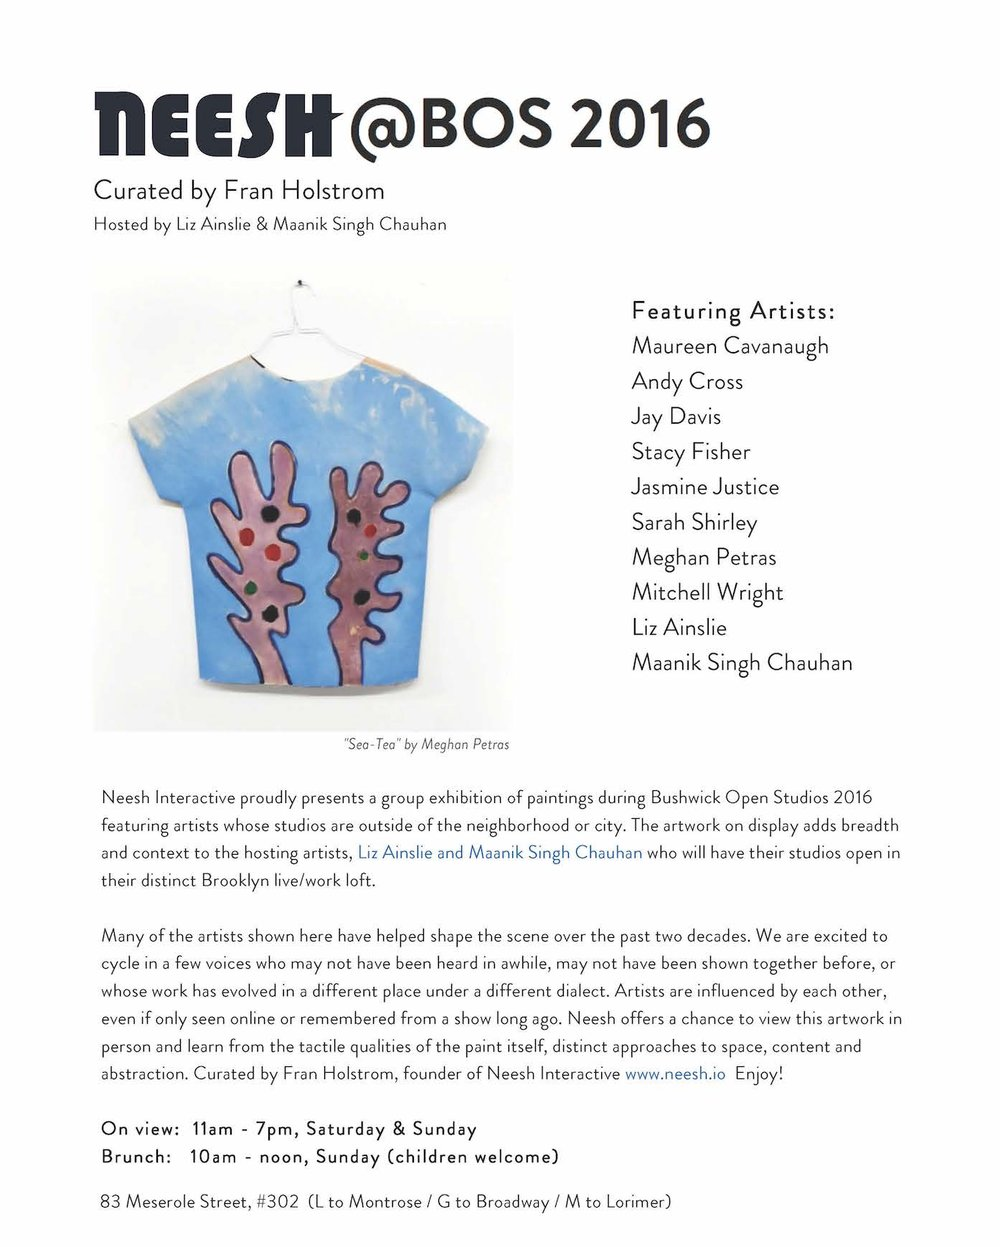 Neesh BOS 2016 PRESS RELEASE_Page.jpg